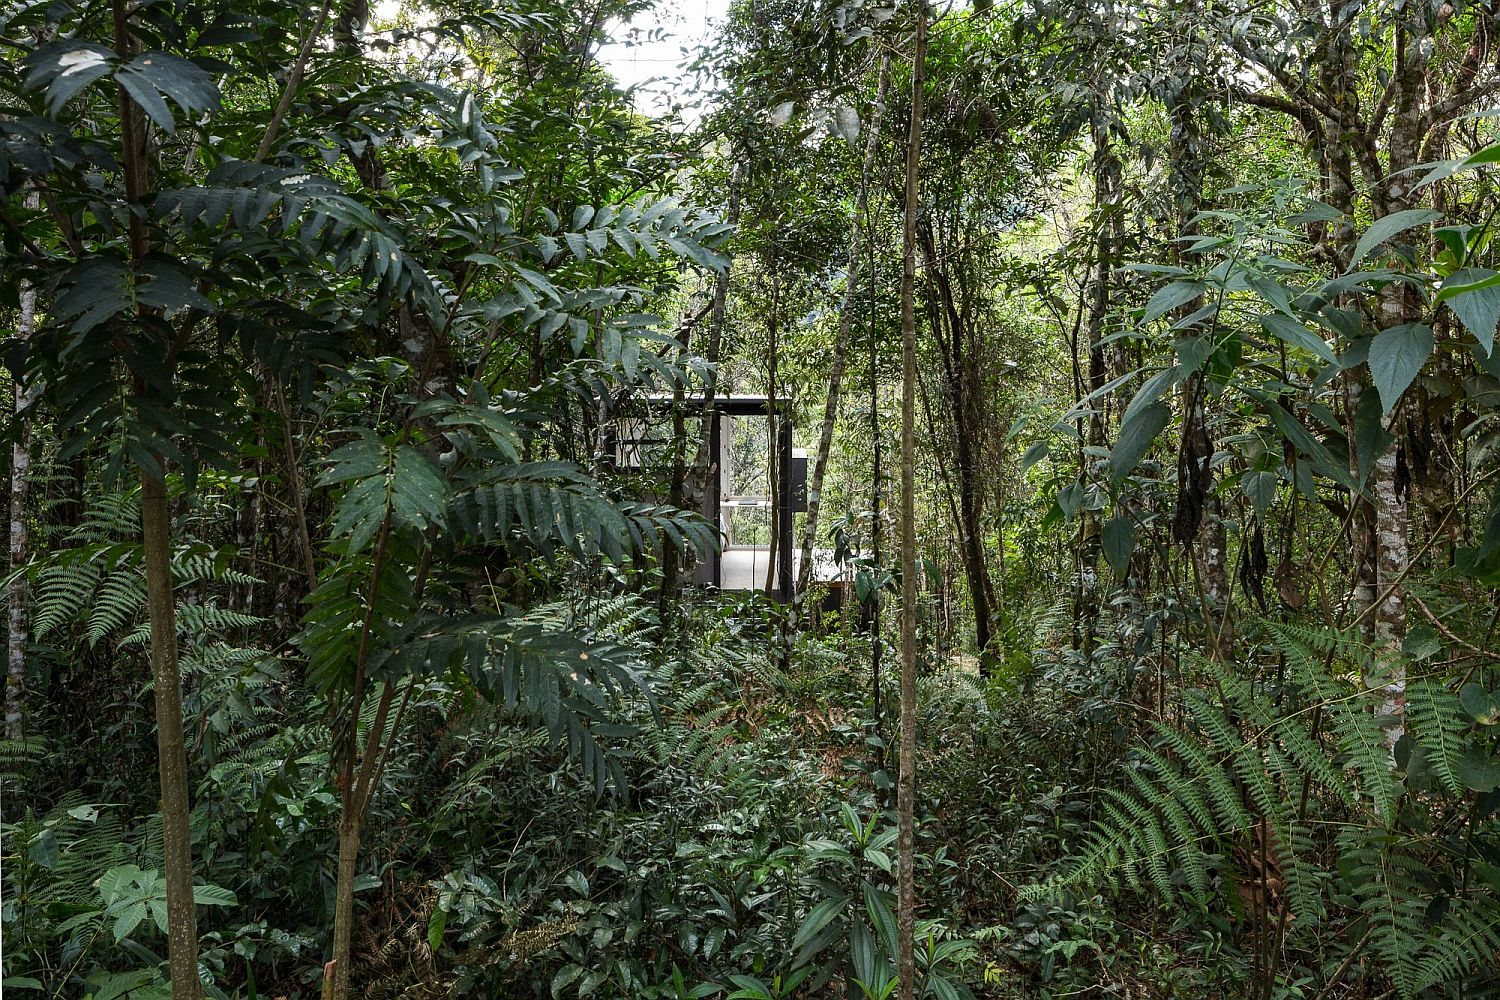 Natural canopy hides the cabin ever so beautifully